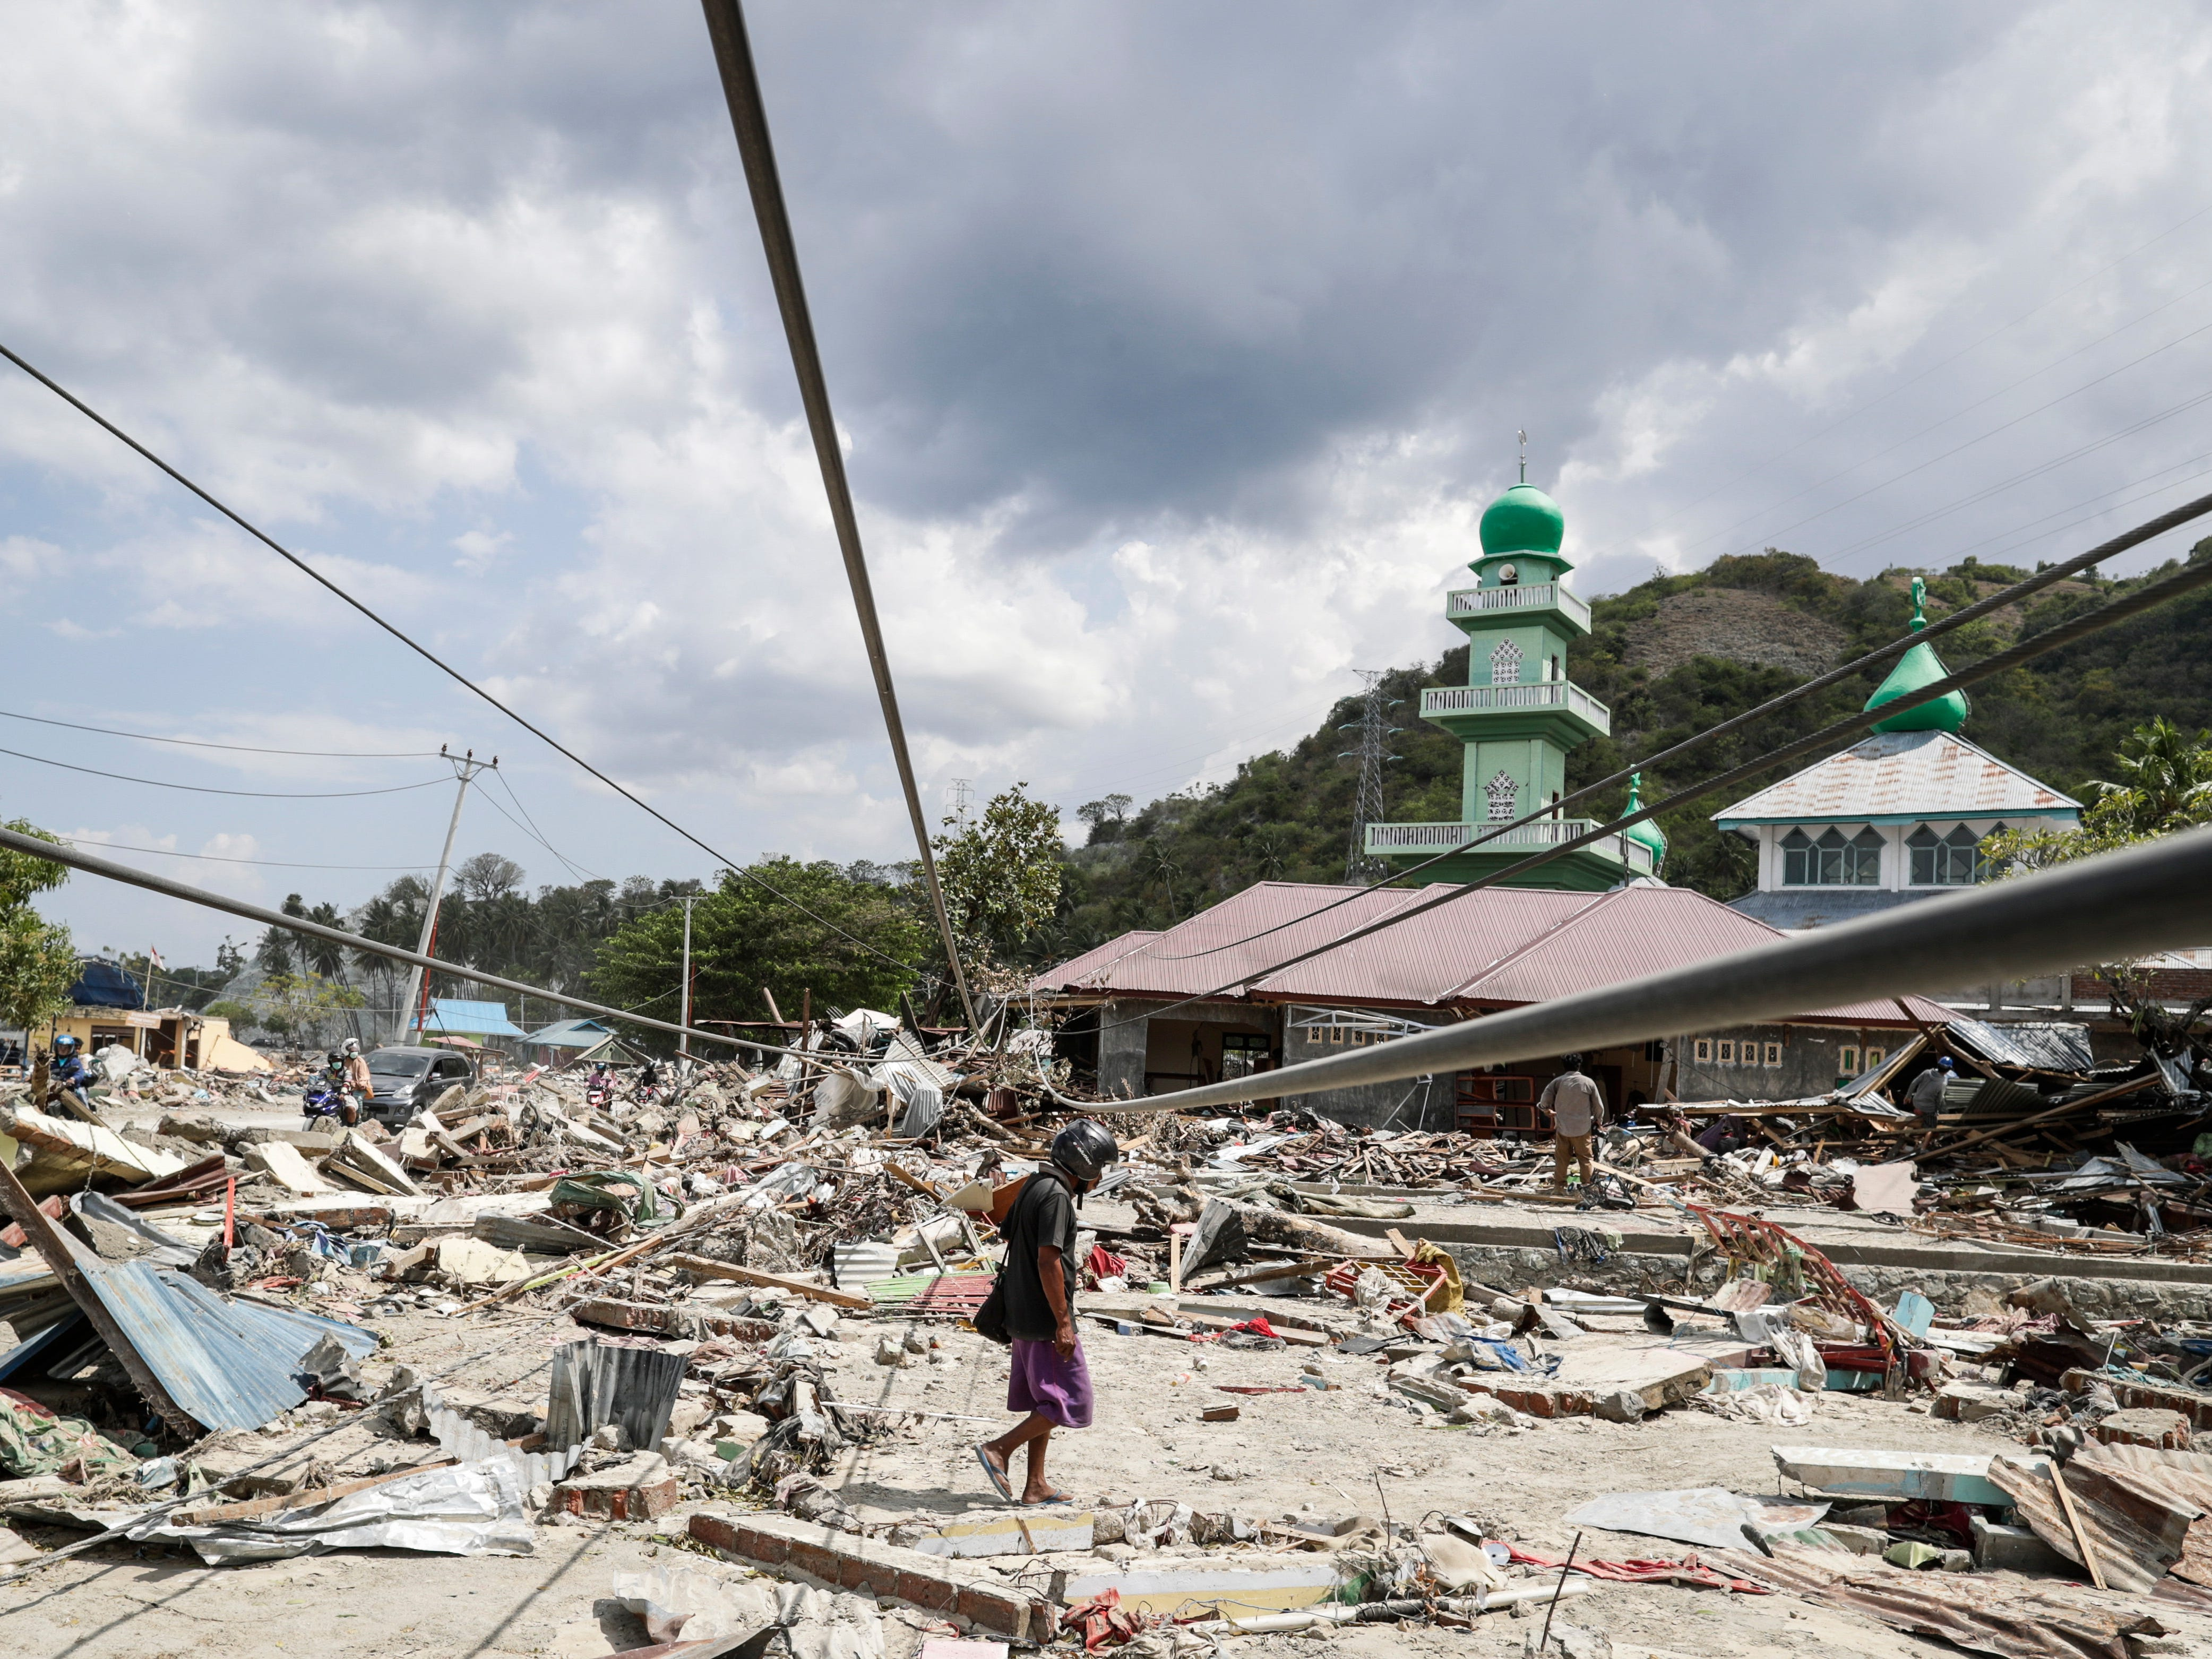 An Indonesian man walks on the rubble at a tsunami devastated area in Donggala, Central Sulawesi, Indonesia, Oct. 3 2018.